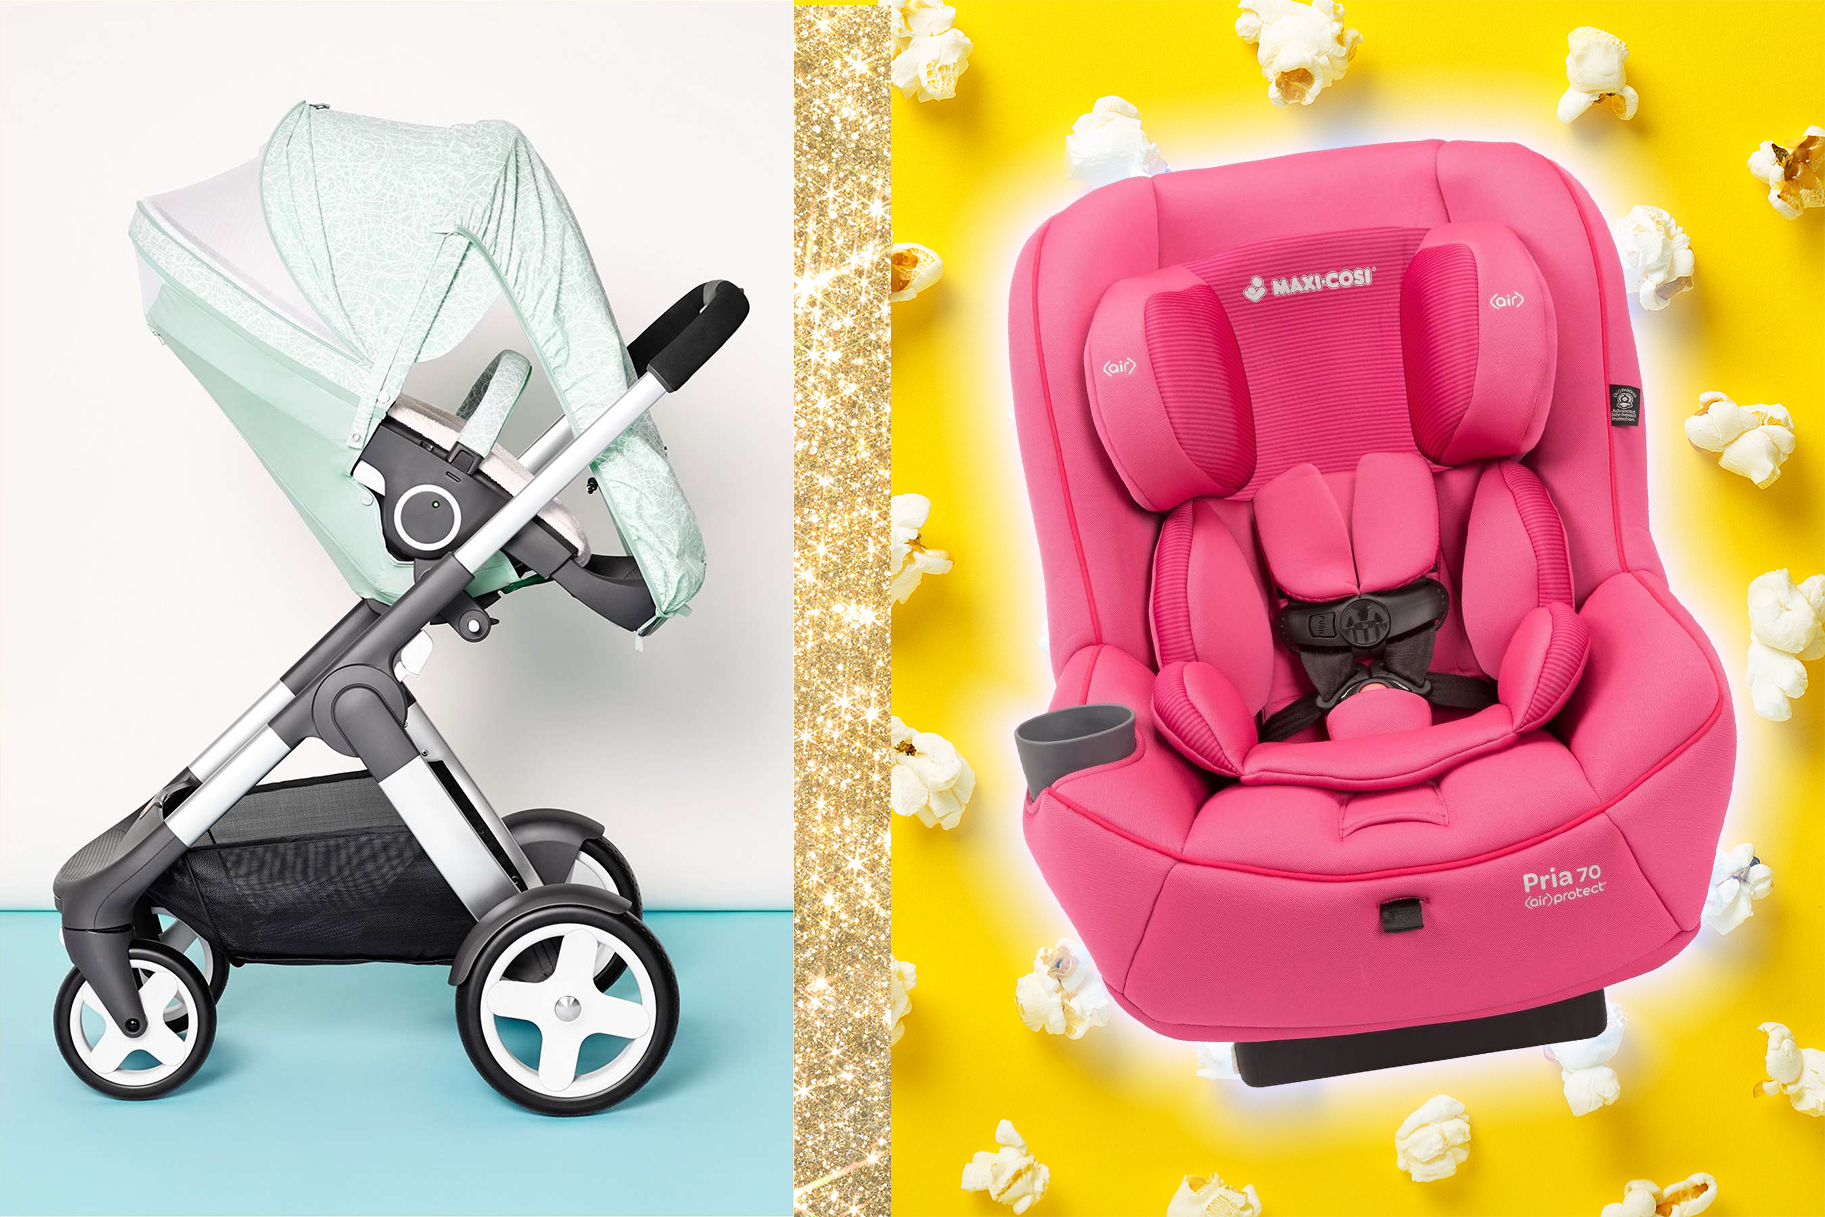 6a586c18d Nordstrom Sale on Baby Gear: Shop Uppa, Bugaboo Strollers | Home ...